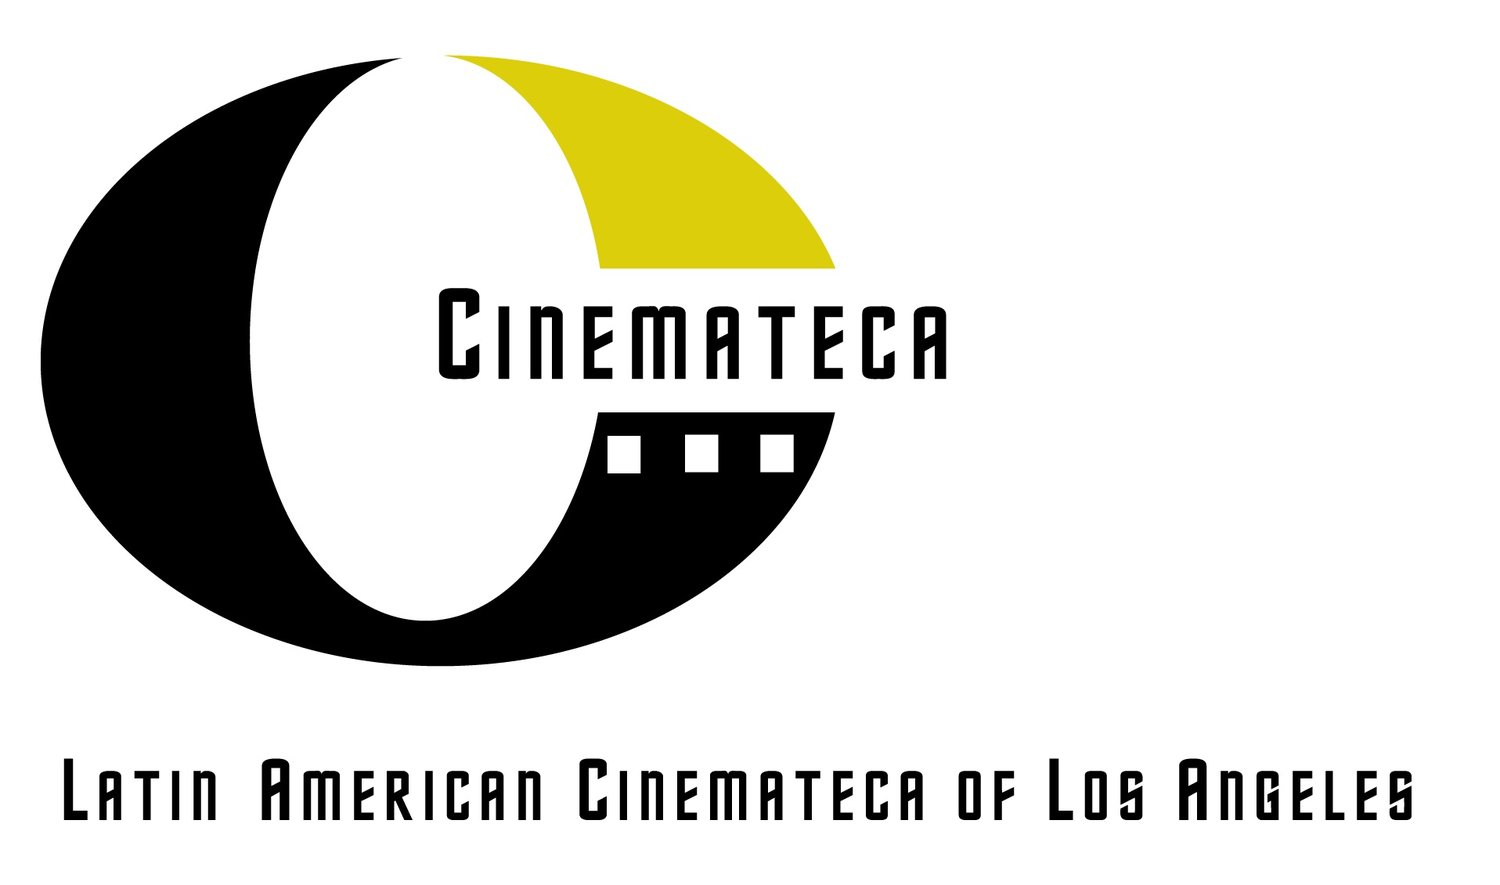 Latin American Cinemateca of Los Angeles